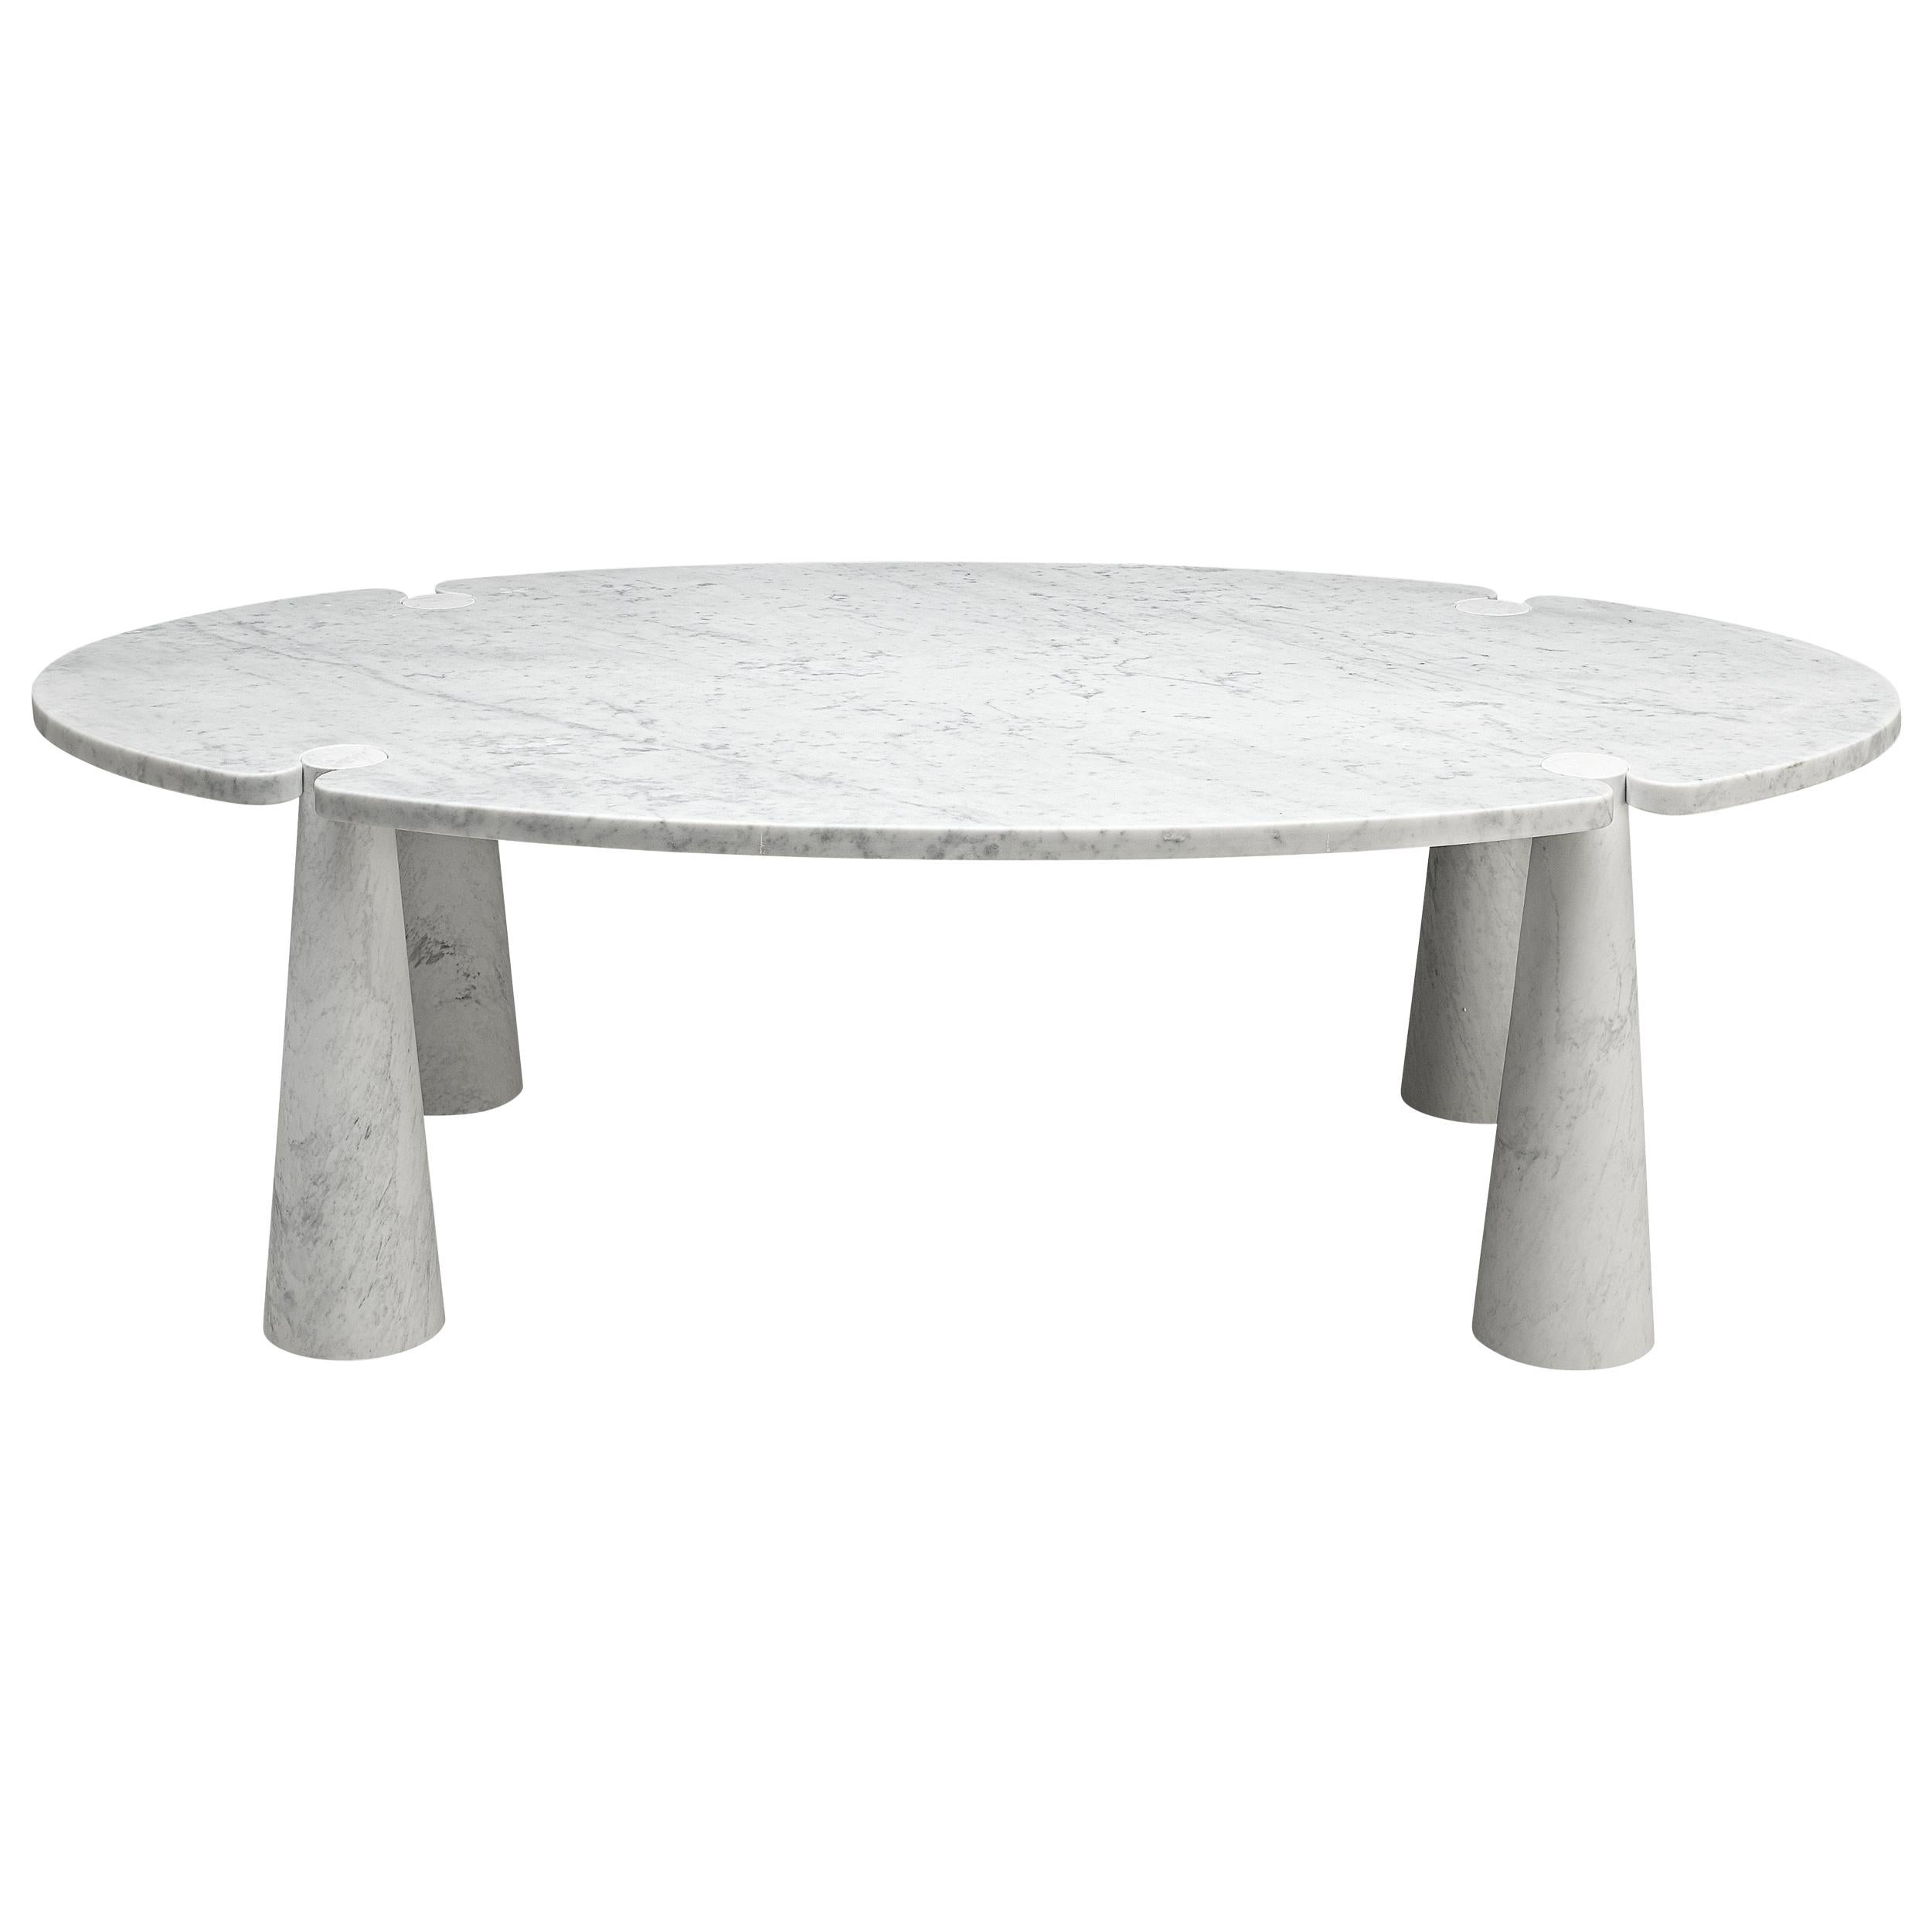 Angelo Mangiarotti 'Eros' Marble Dining Table